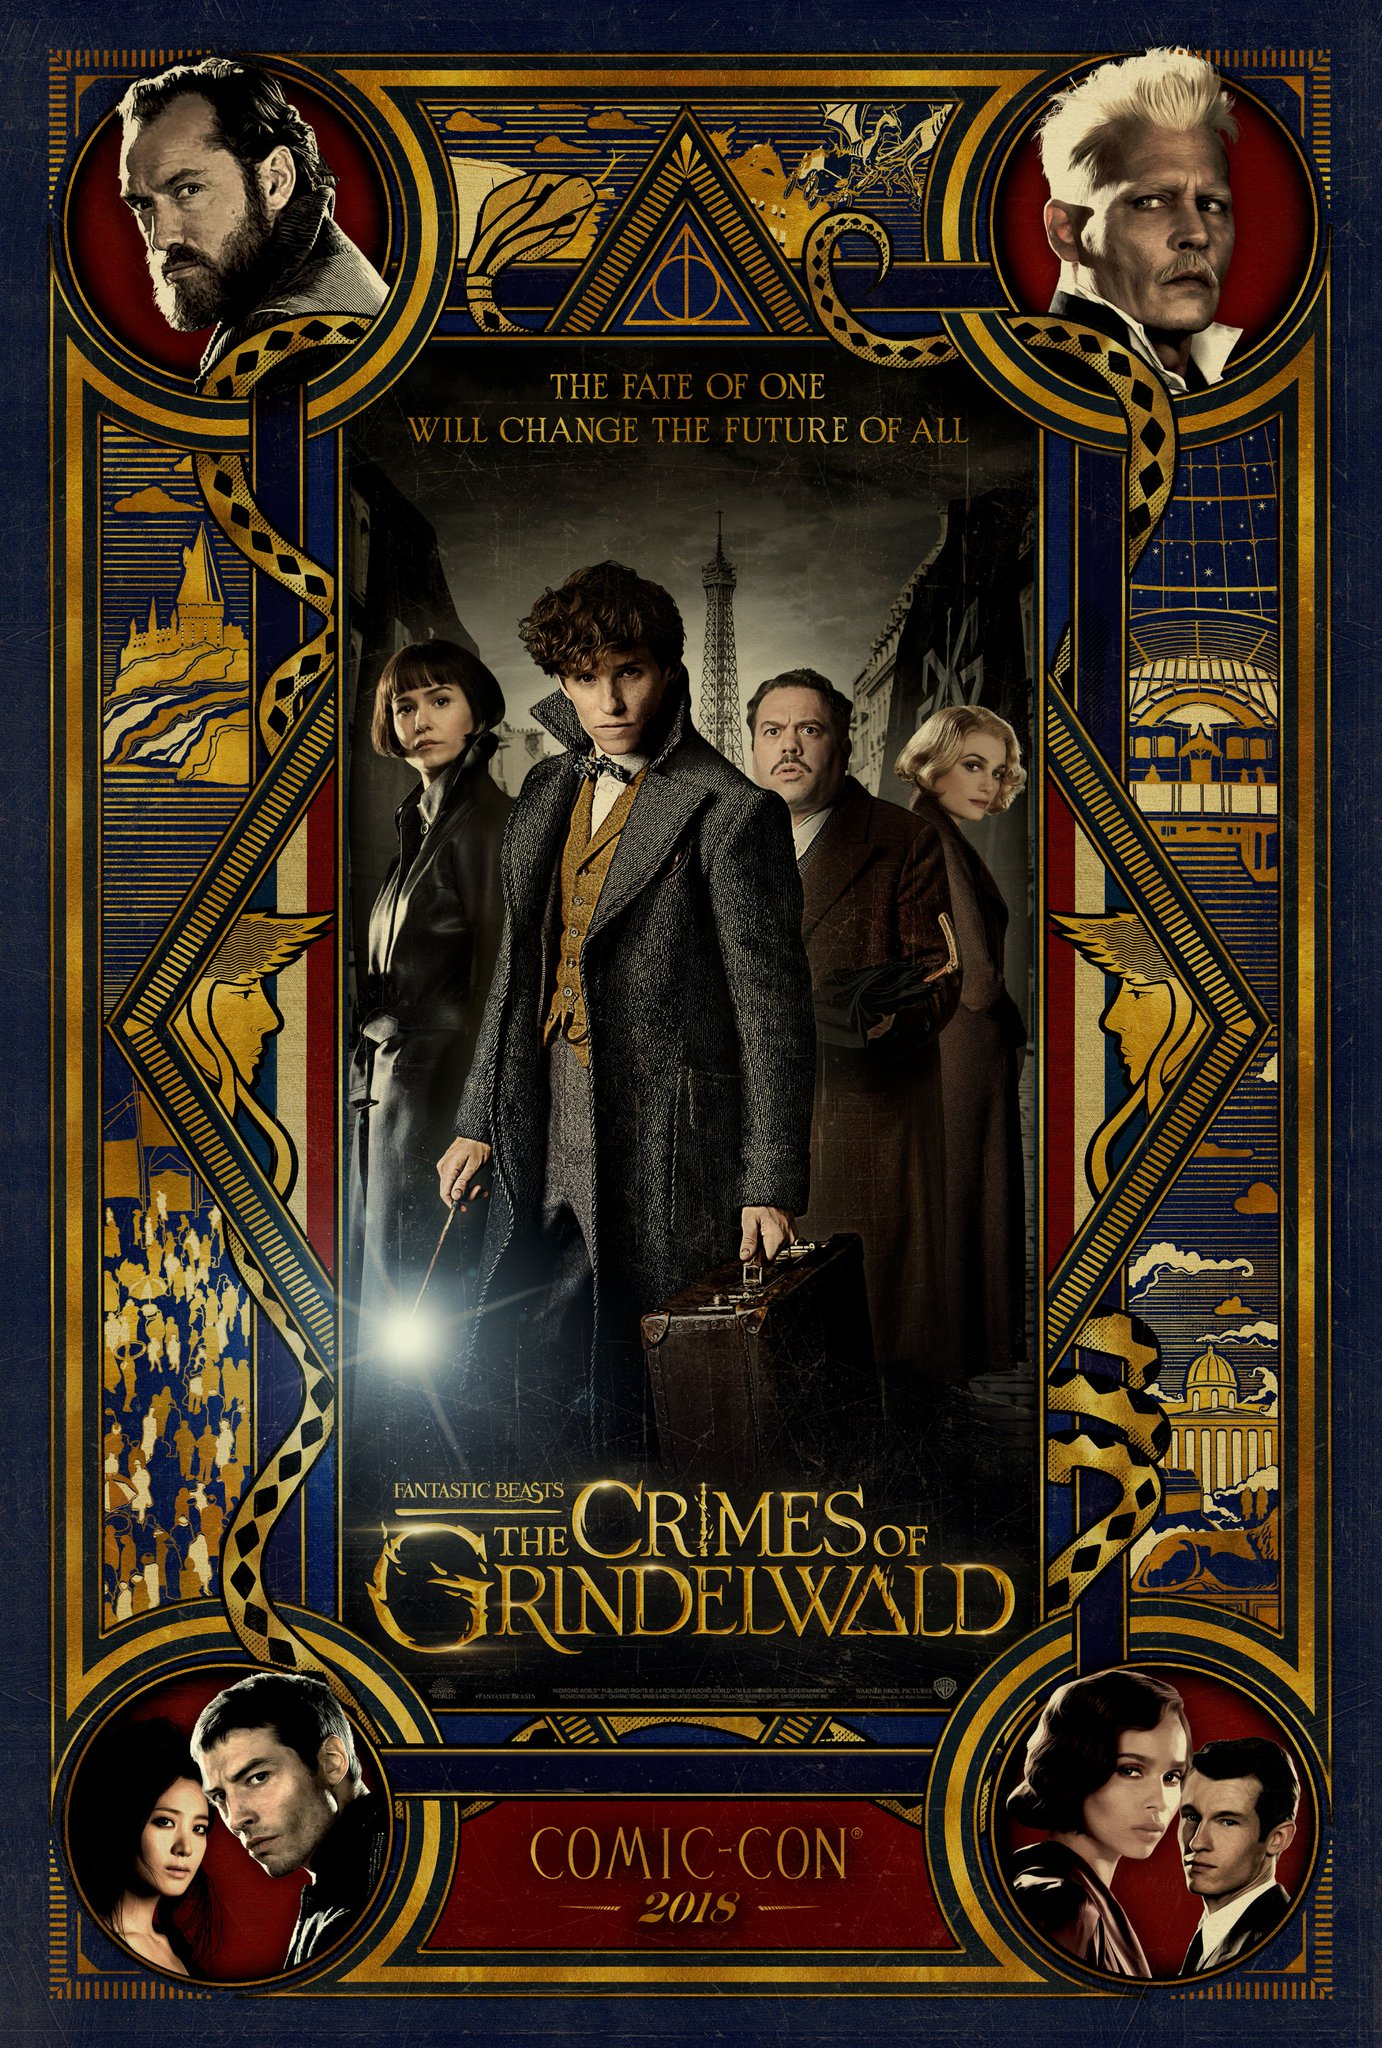 fantastic-beasts-the-crimes-of-grindelwald-comic-con-poster